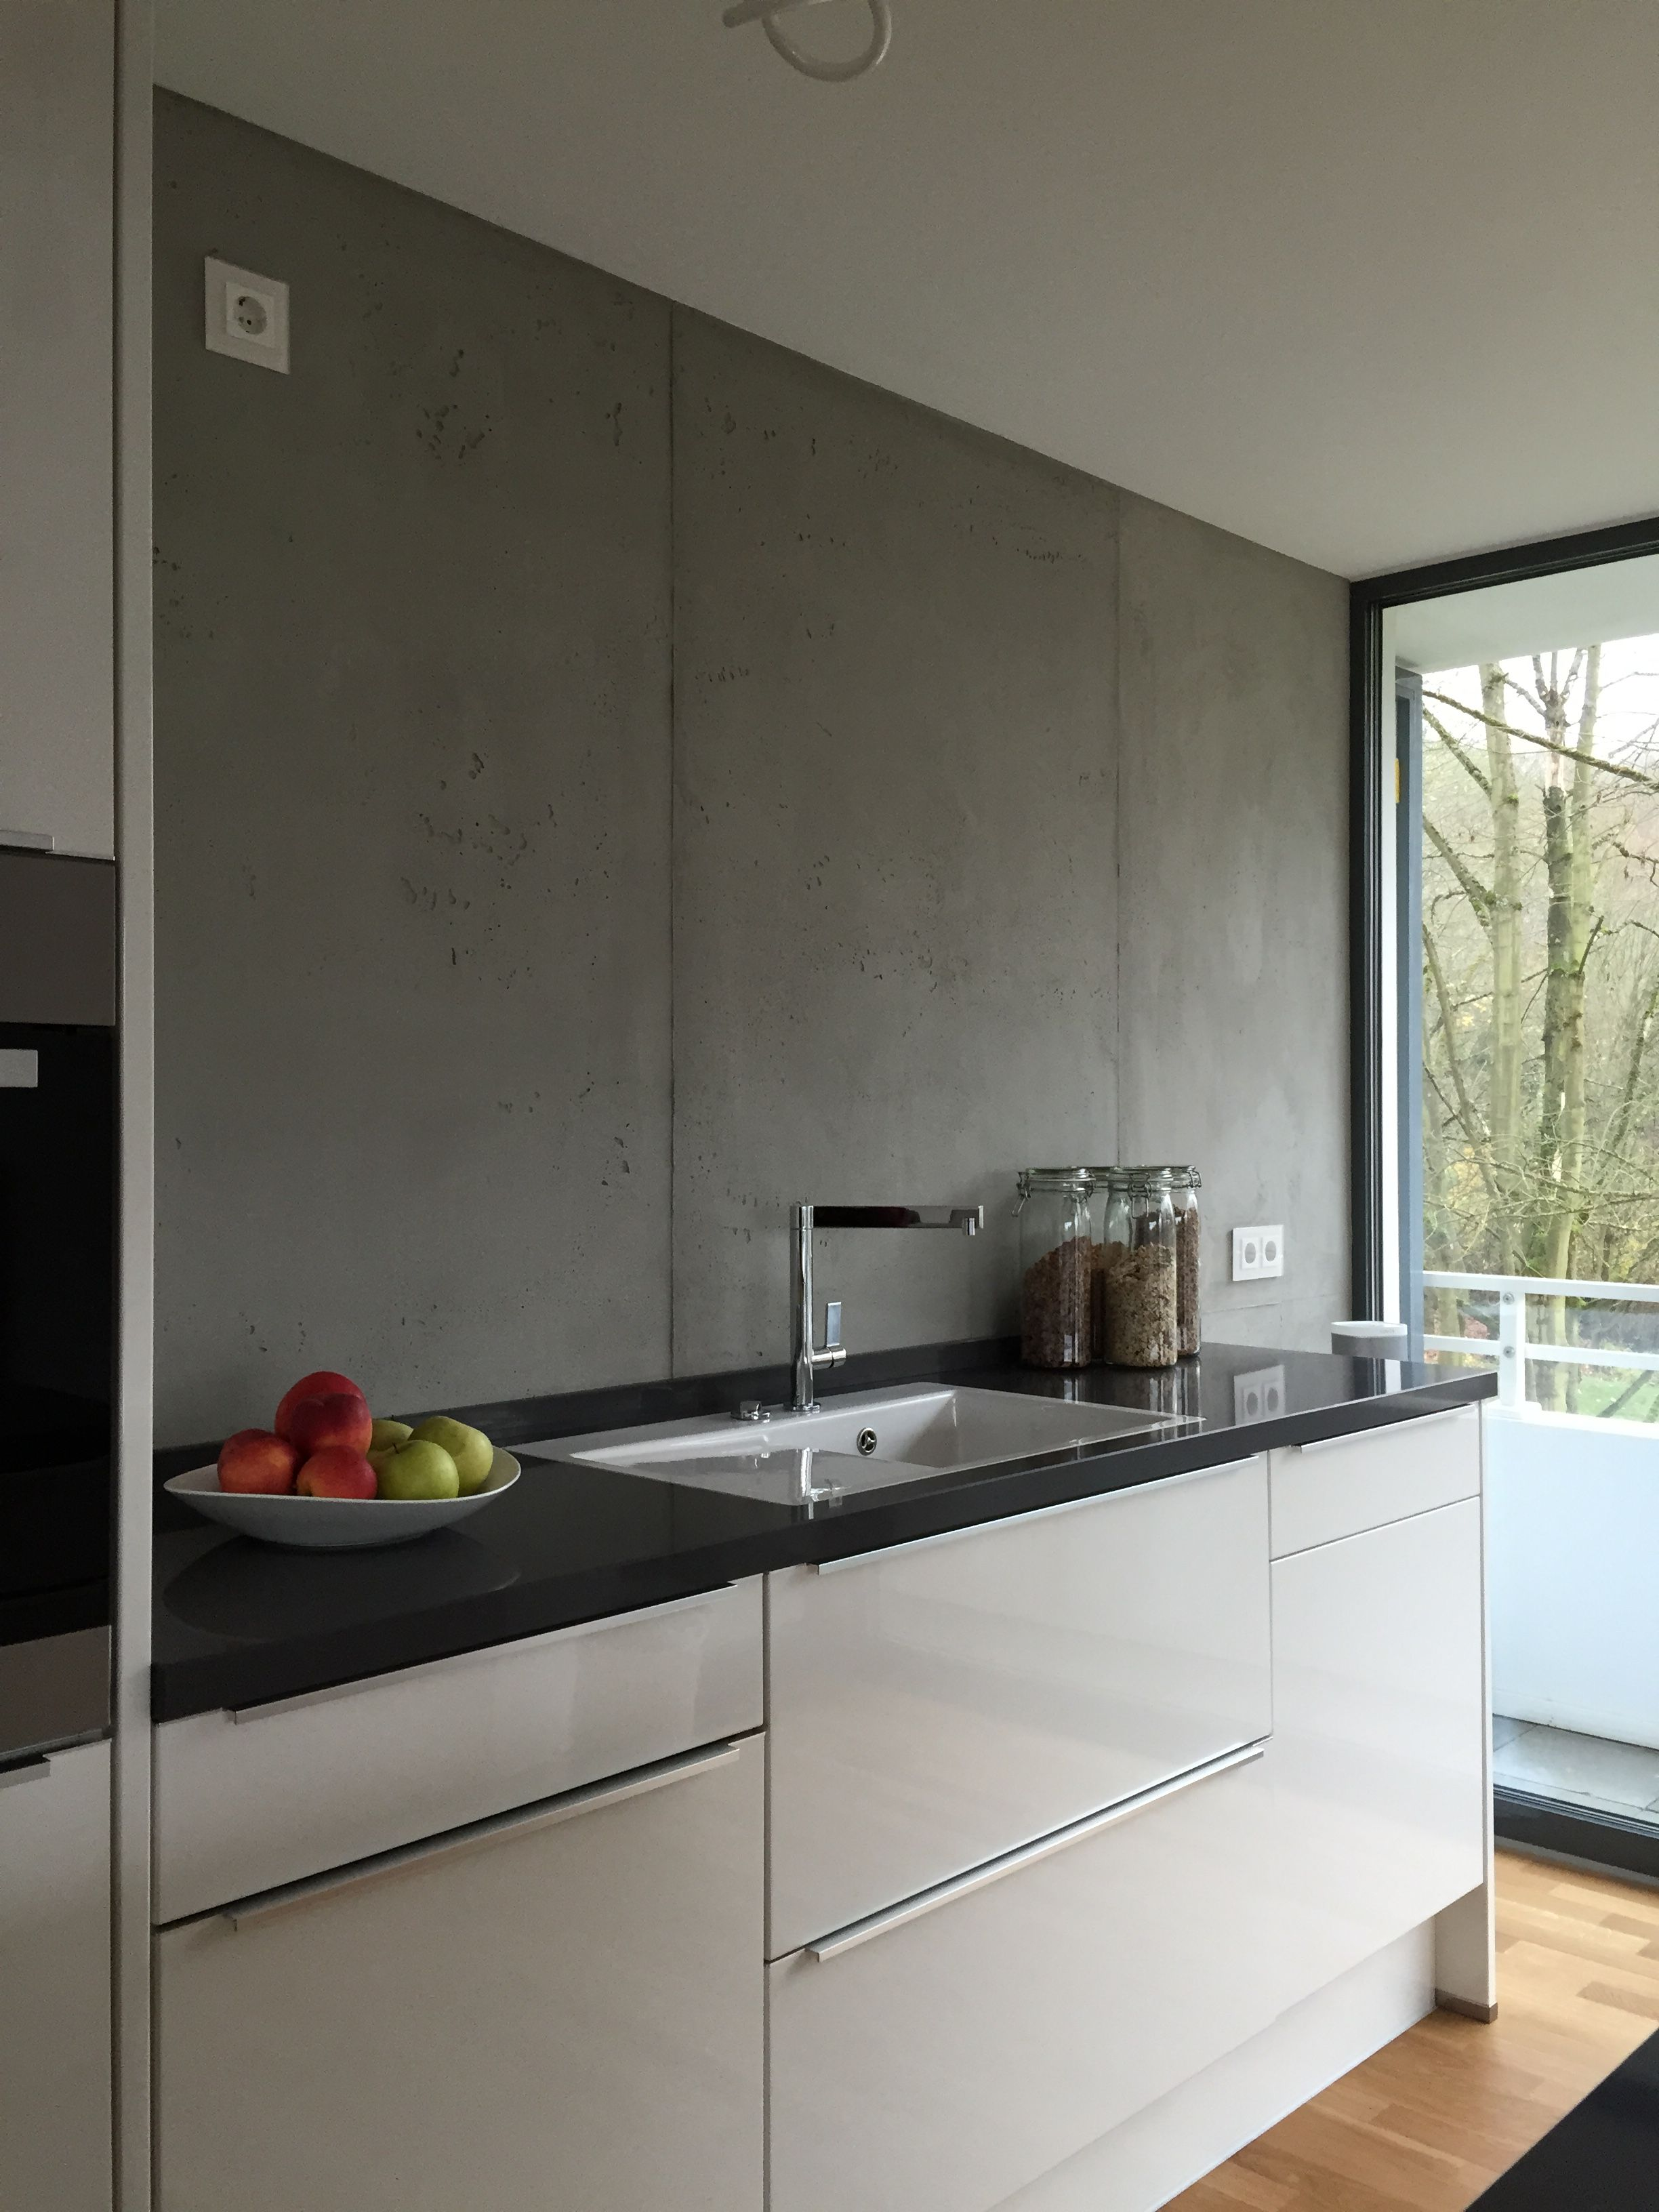 Betonlook in der Küche | Kitchen Ideas in 2019 | Fliesen ...